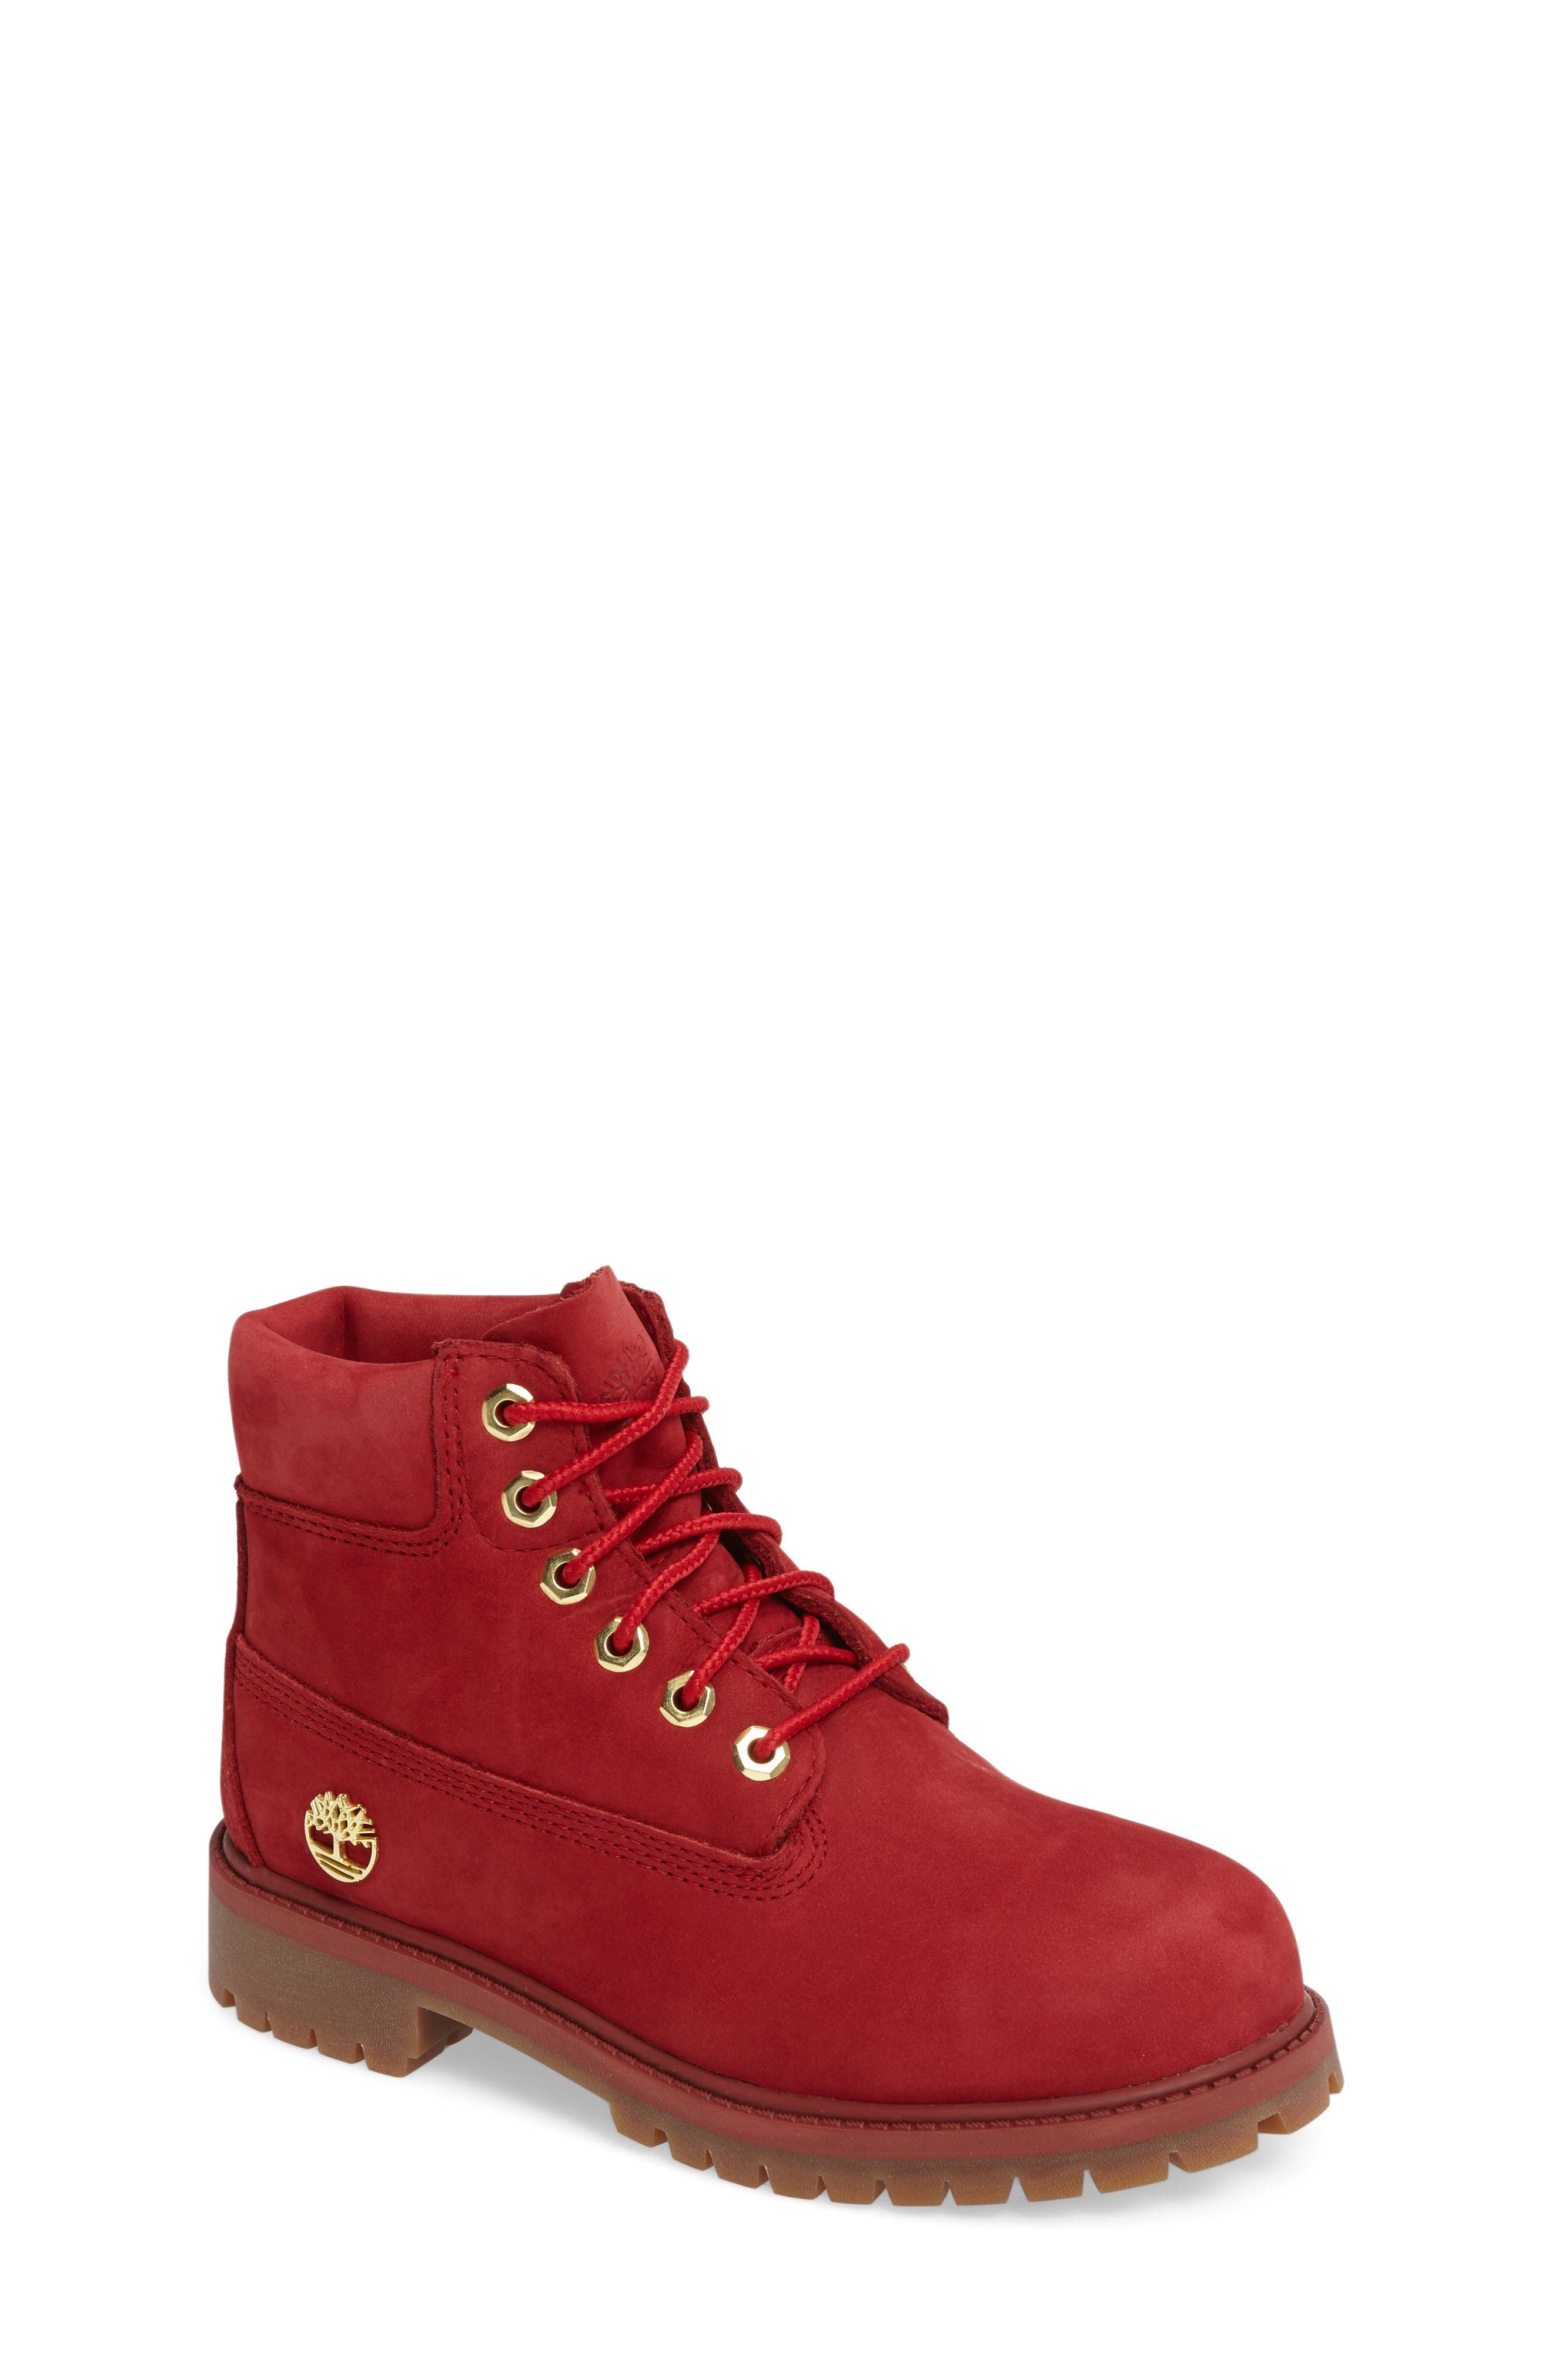 TIMBERLAND 40th Anniversary Ruby Red Waterproof Boot